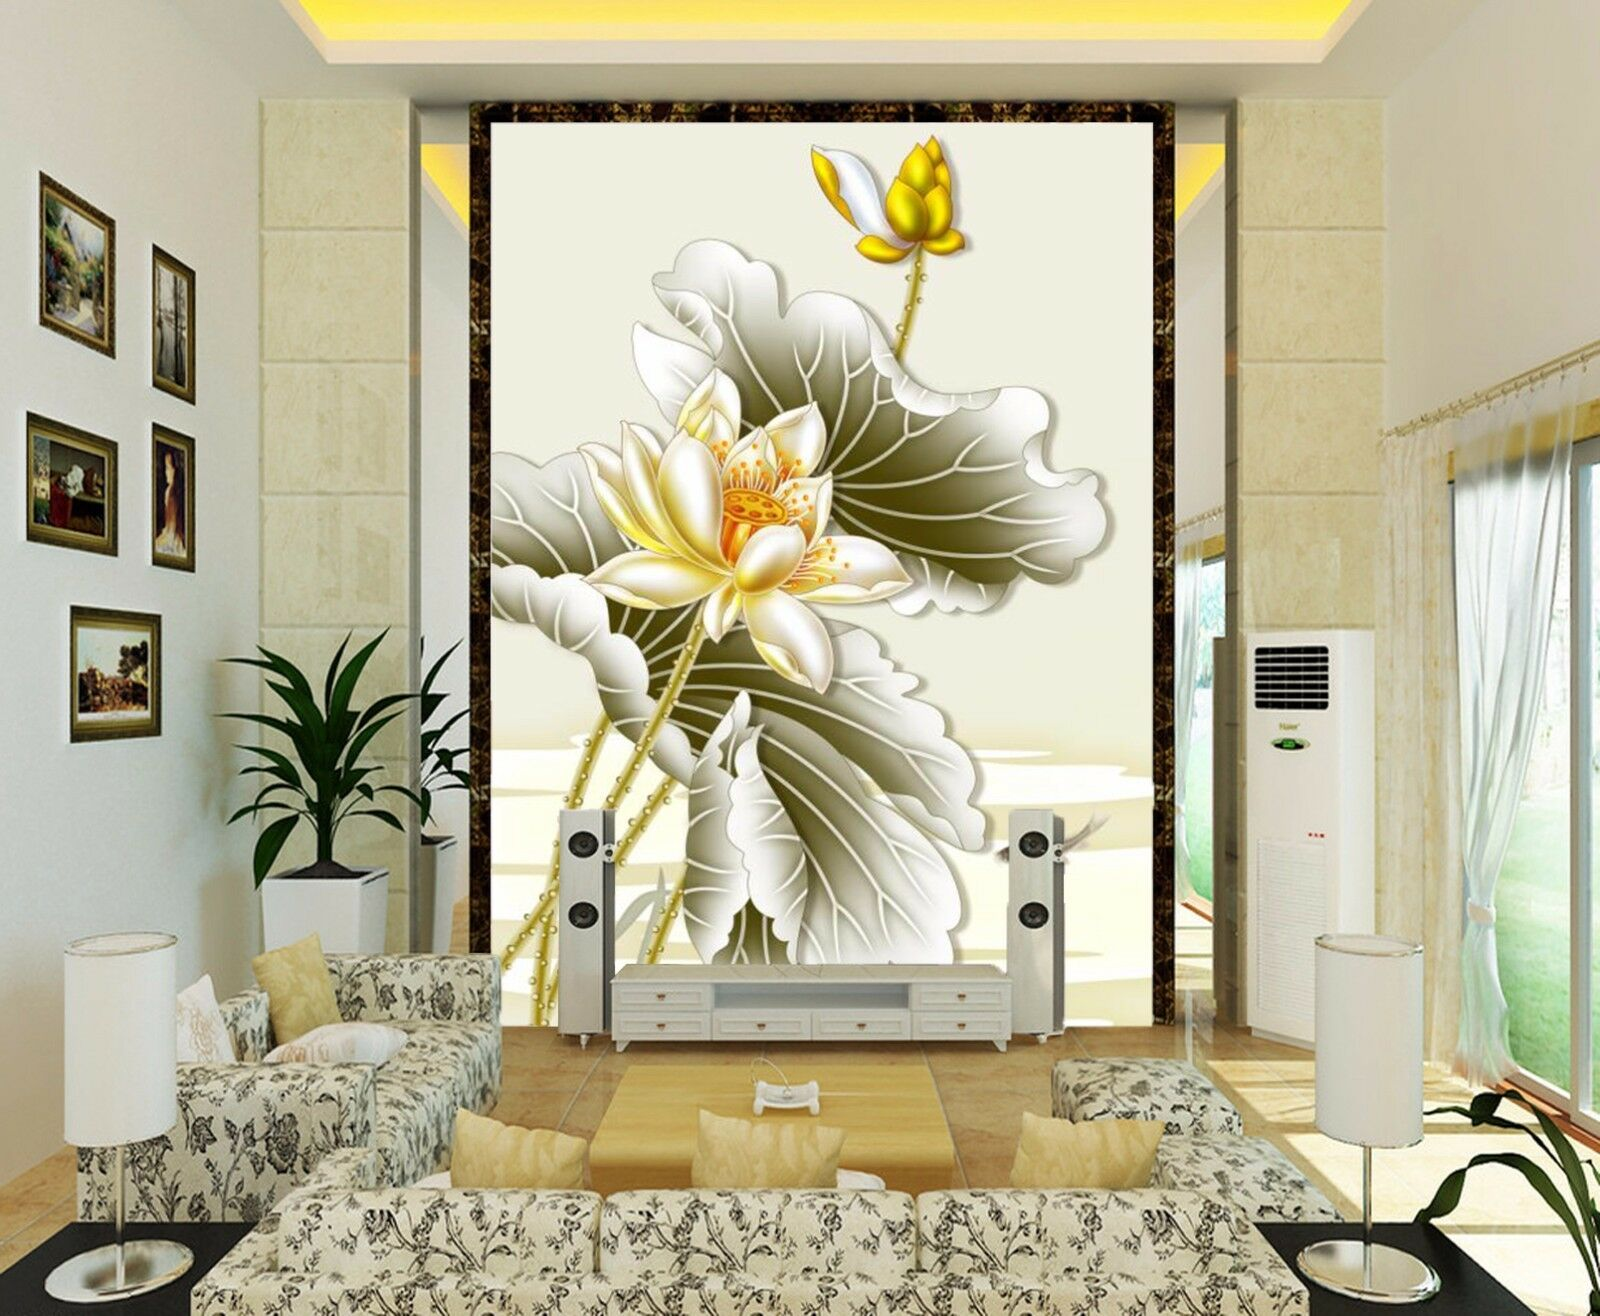 3D Lotus Carp Painting 843 Wallpaper Mural Paper Wall Print Wallpaper Murals UK